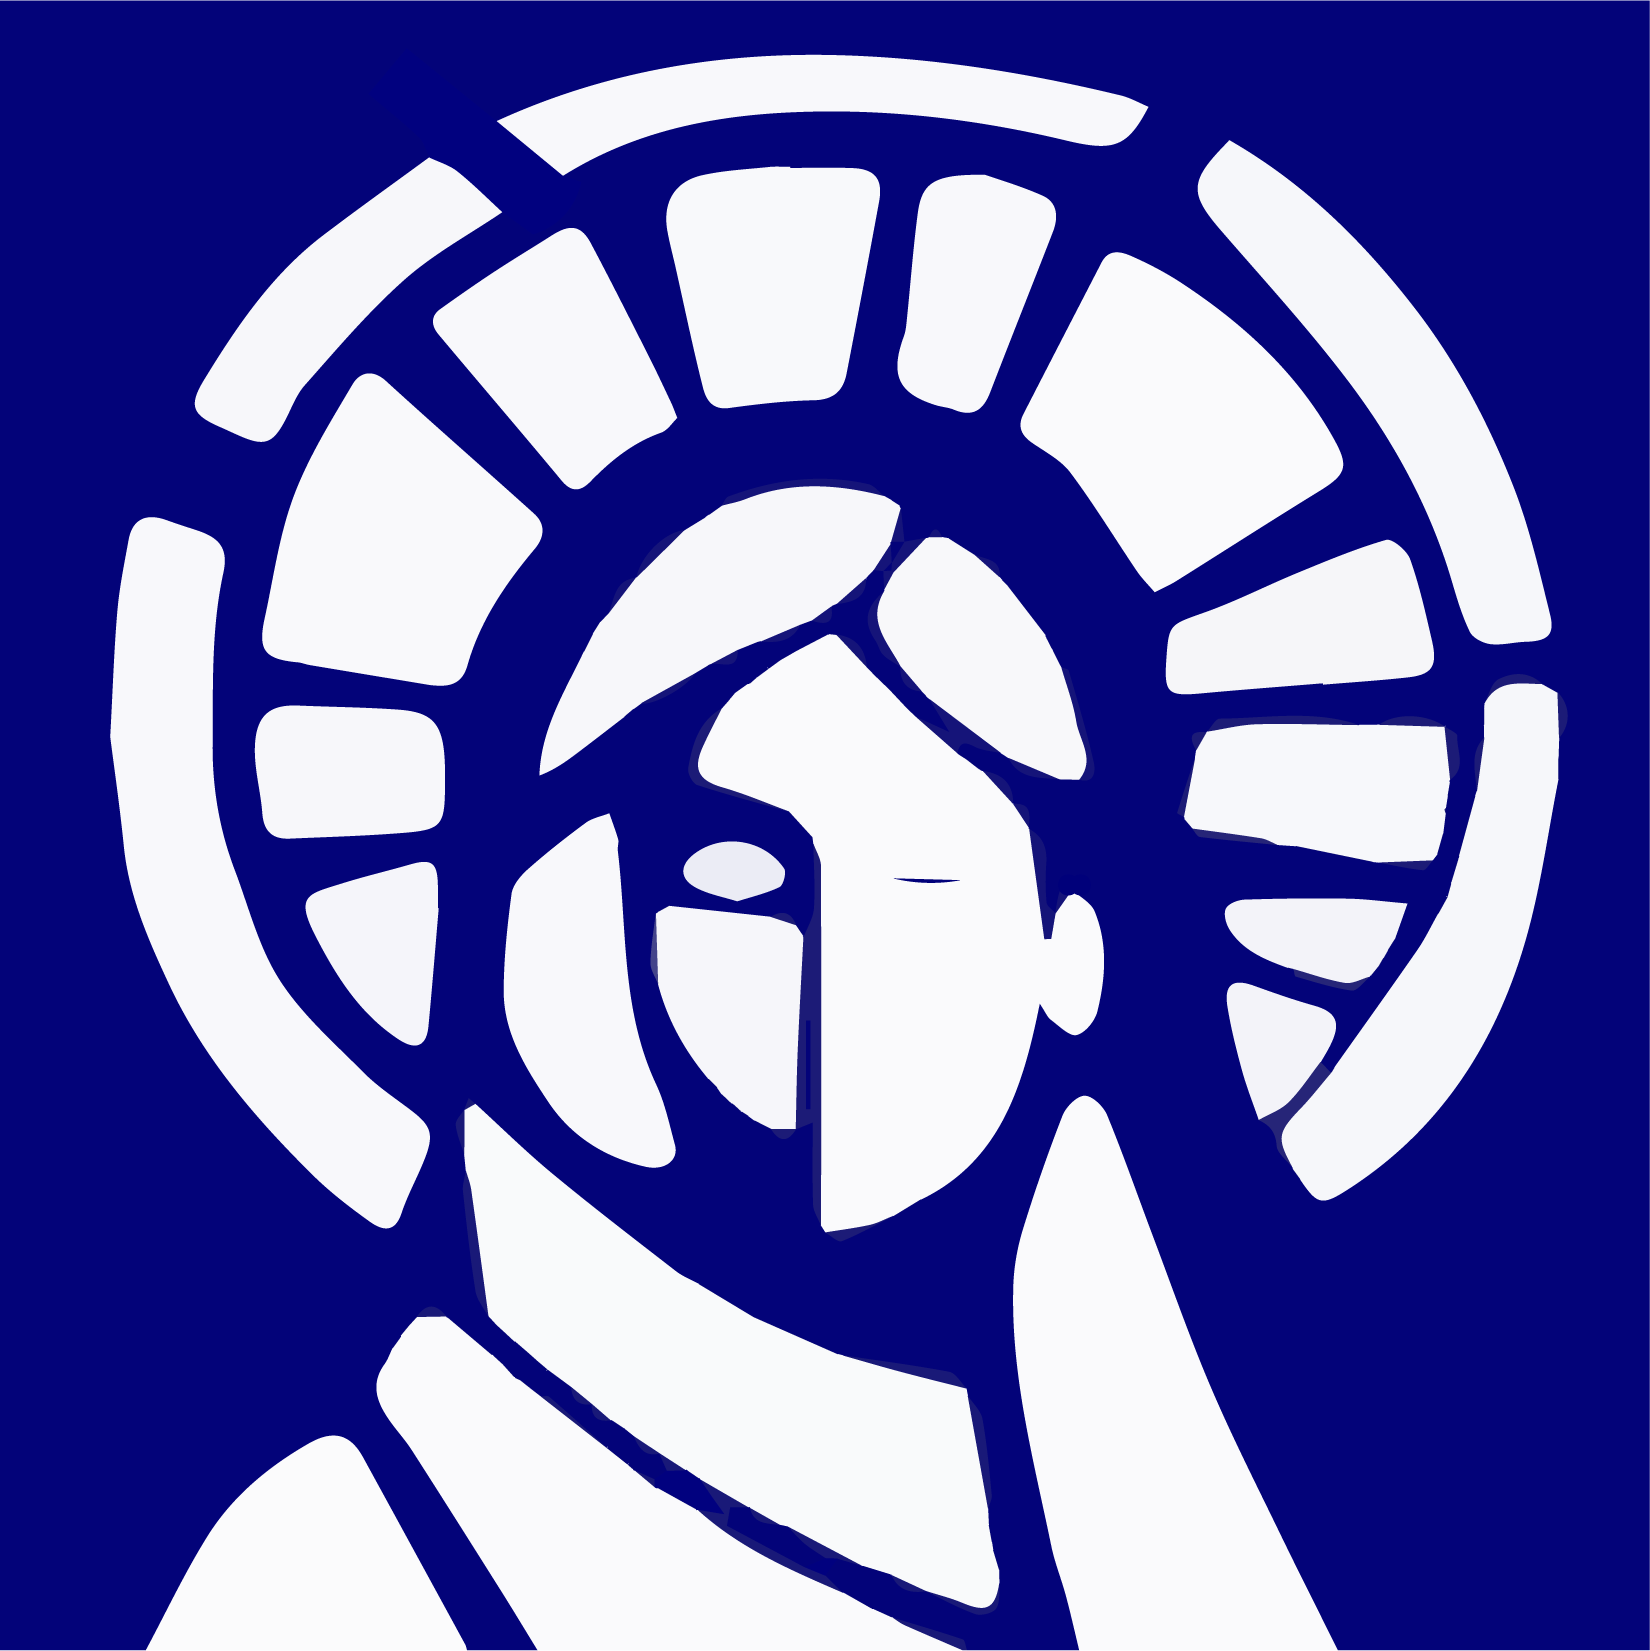 Our Lady of the Lake Parish